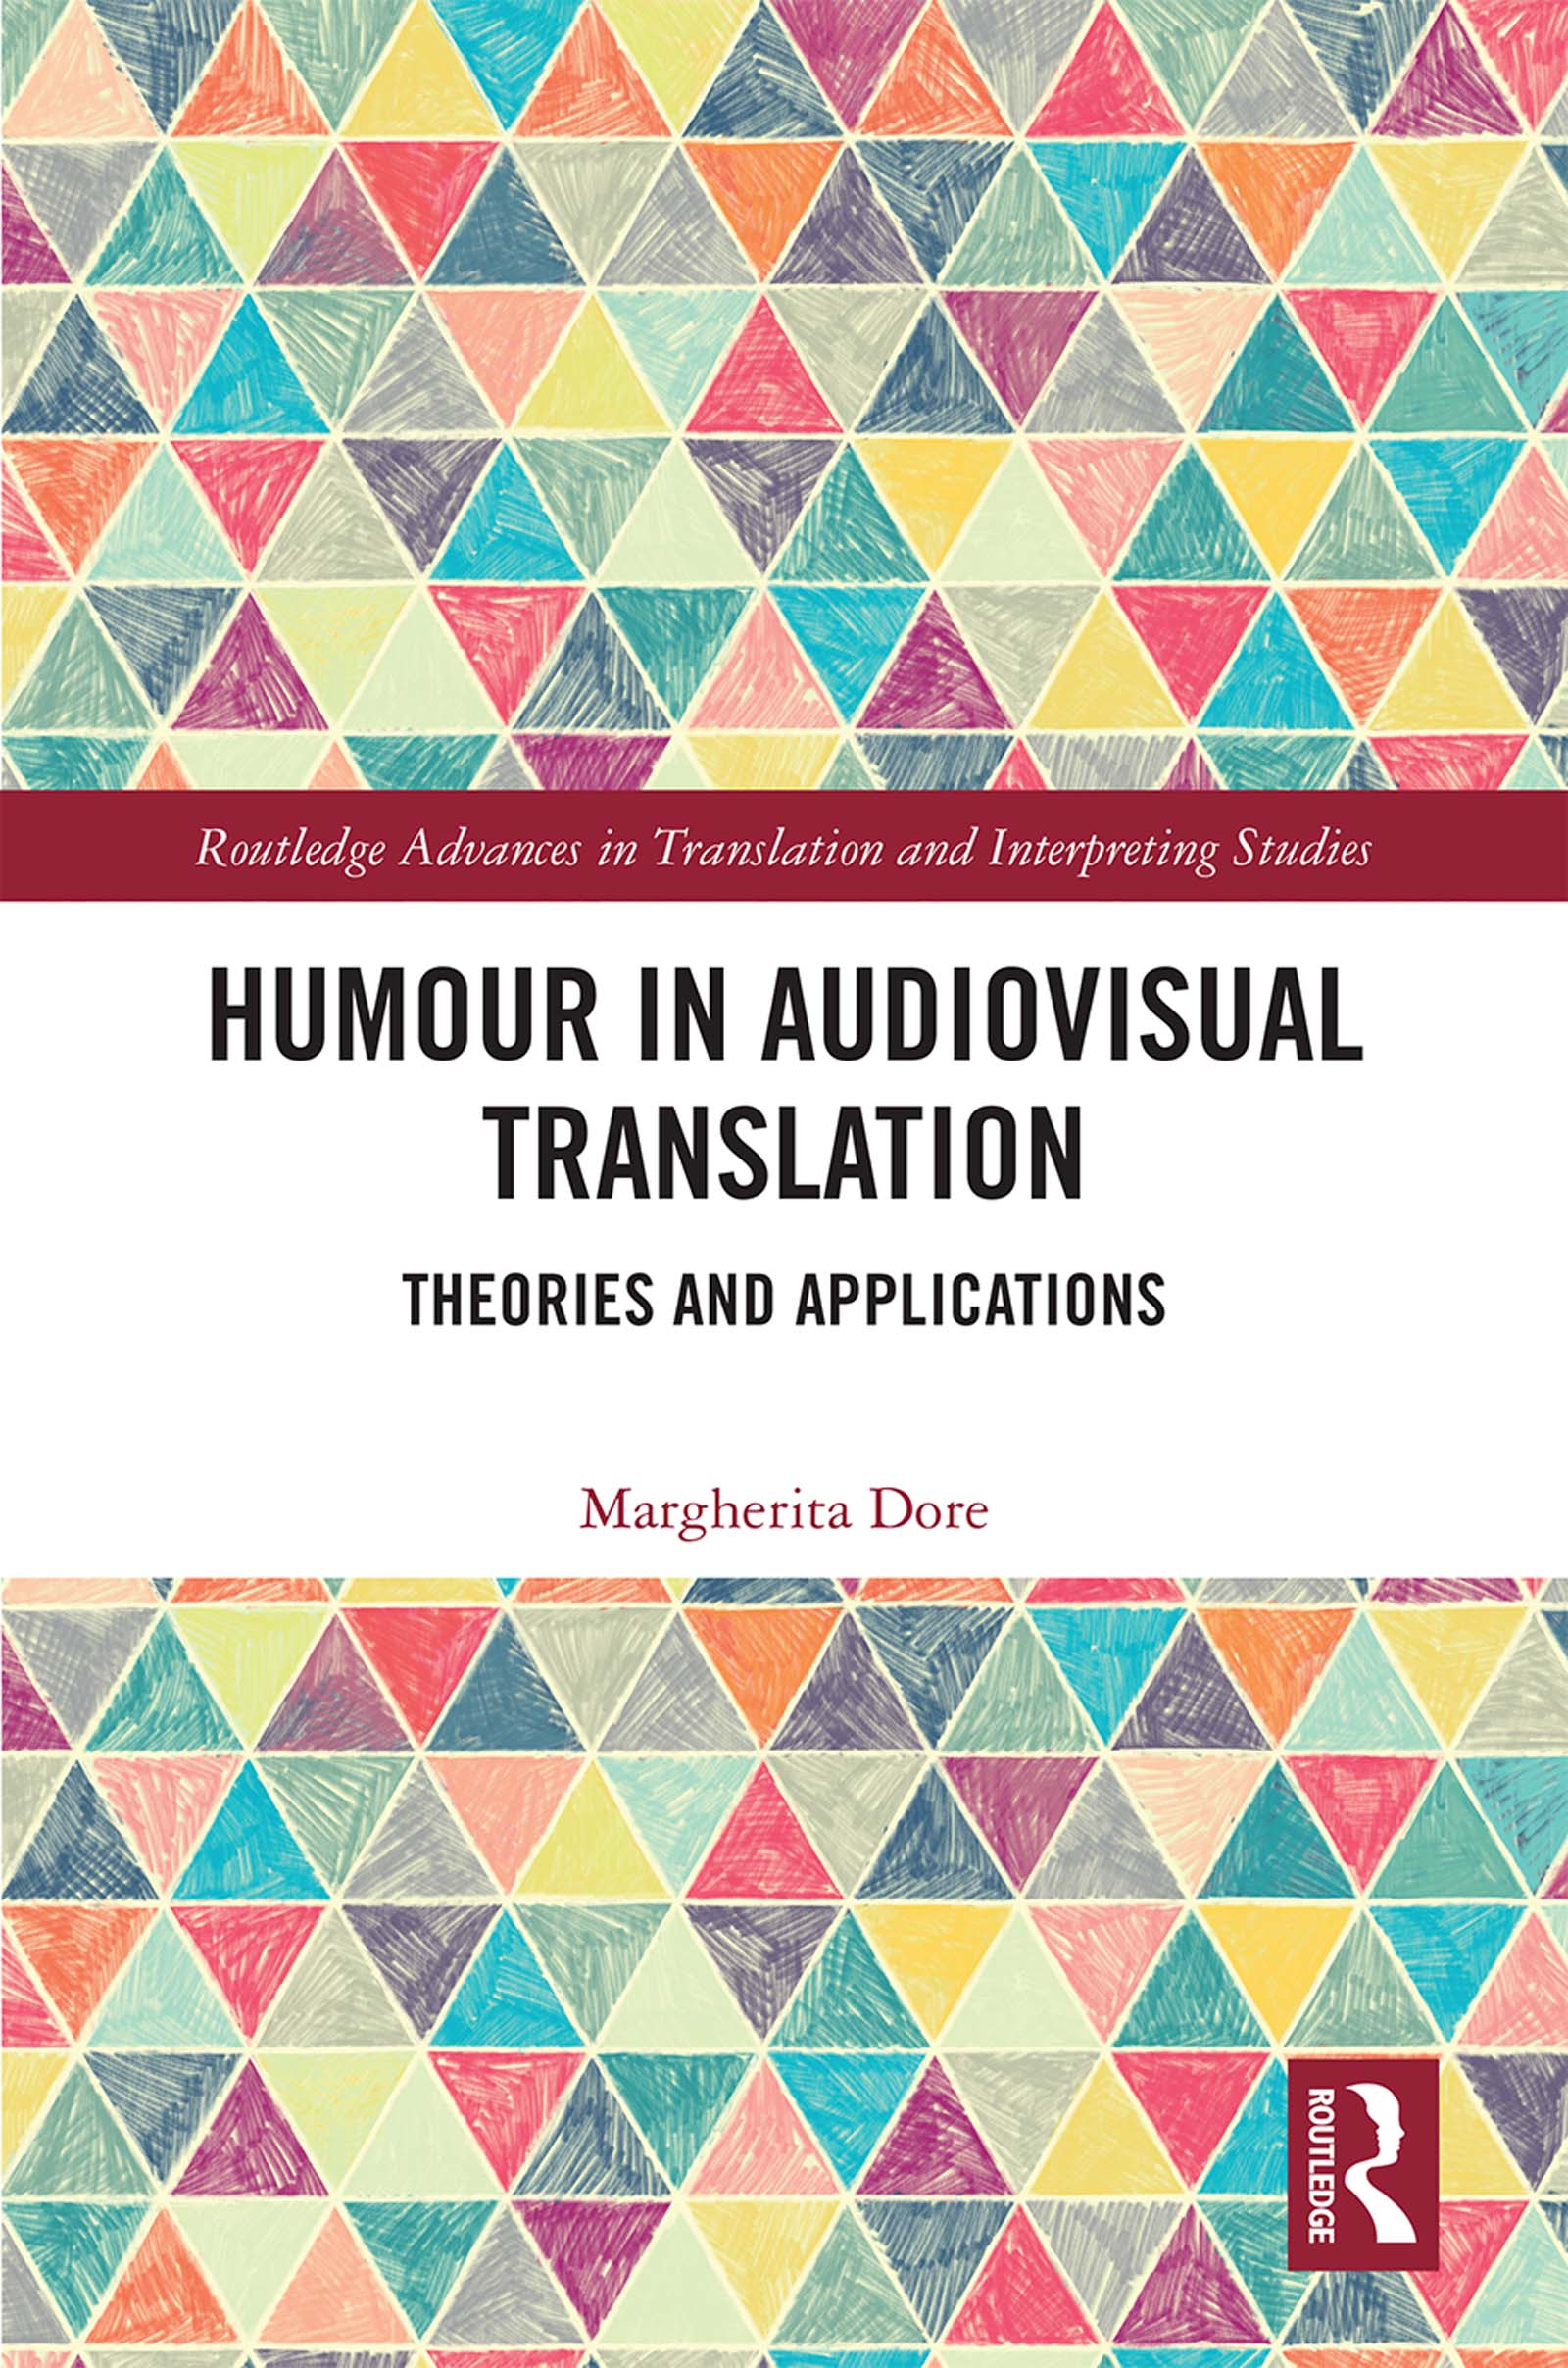 Humour in Audiovisual Translation: Theories and Applications book cover